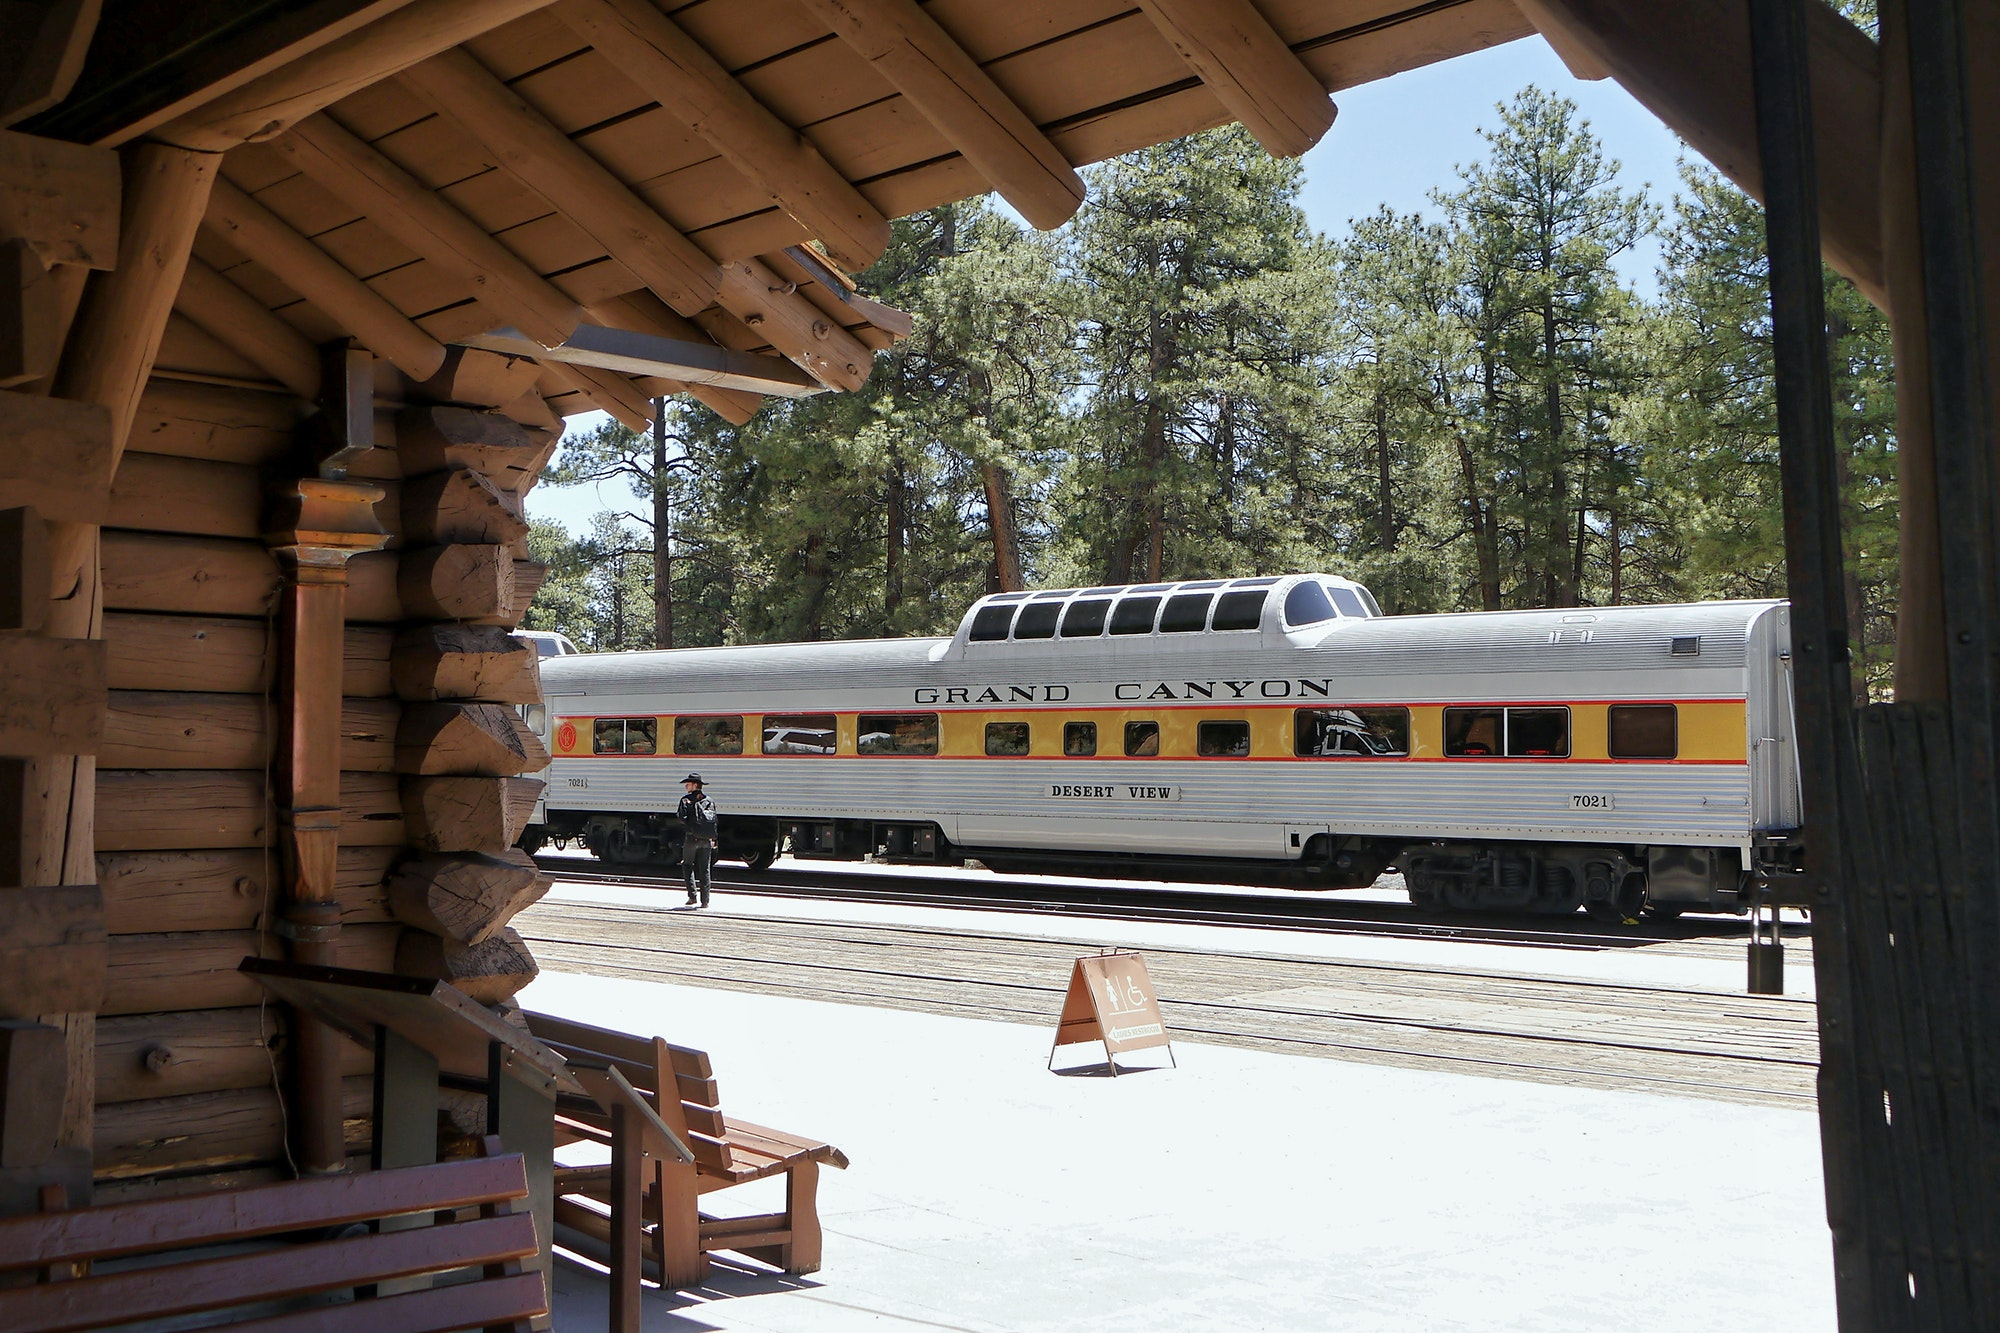 The historic train makes its stop in the Grand Canyon Village.